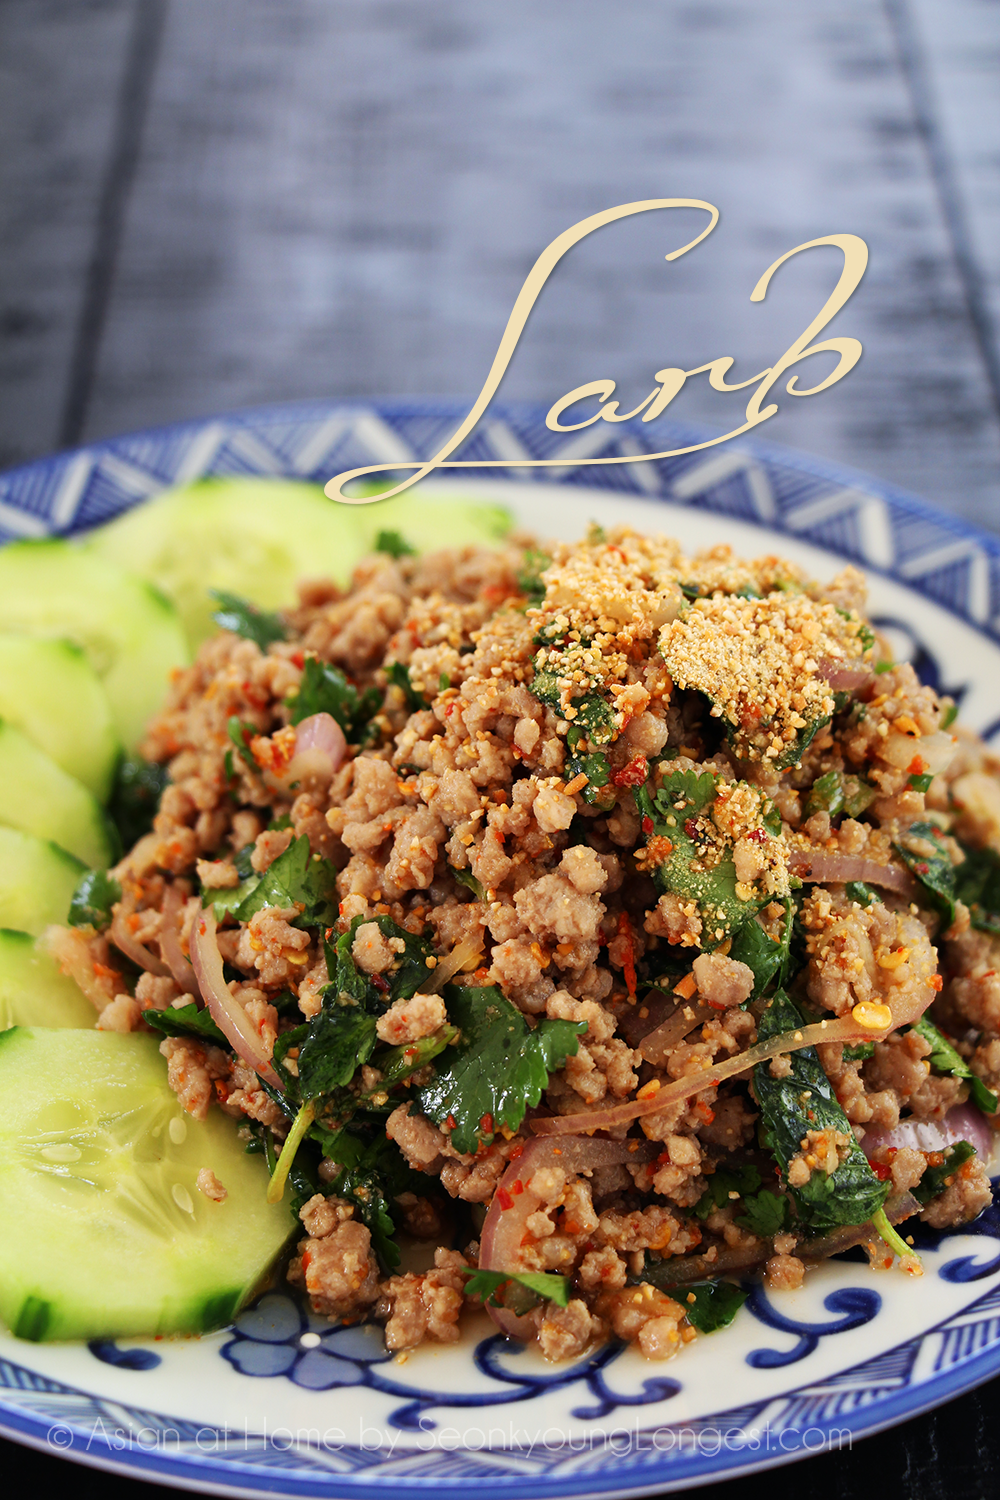 Beef larb recipe - Lao Cuisine - YouTube